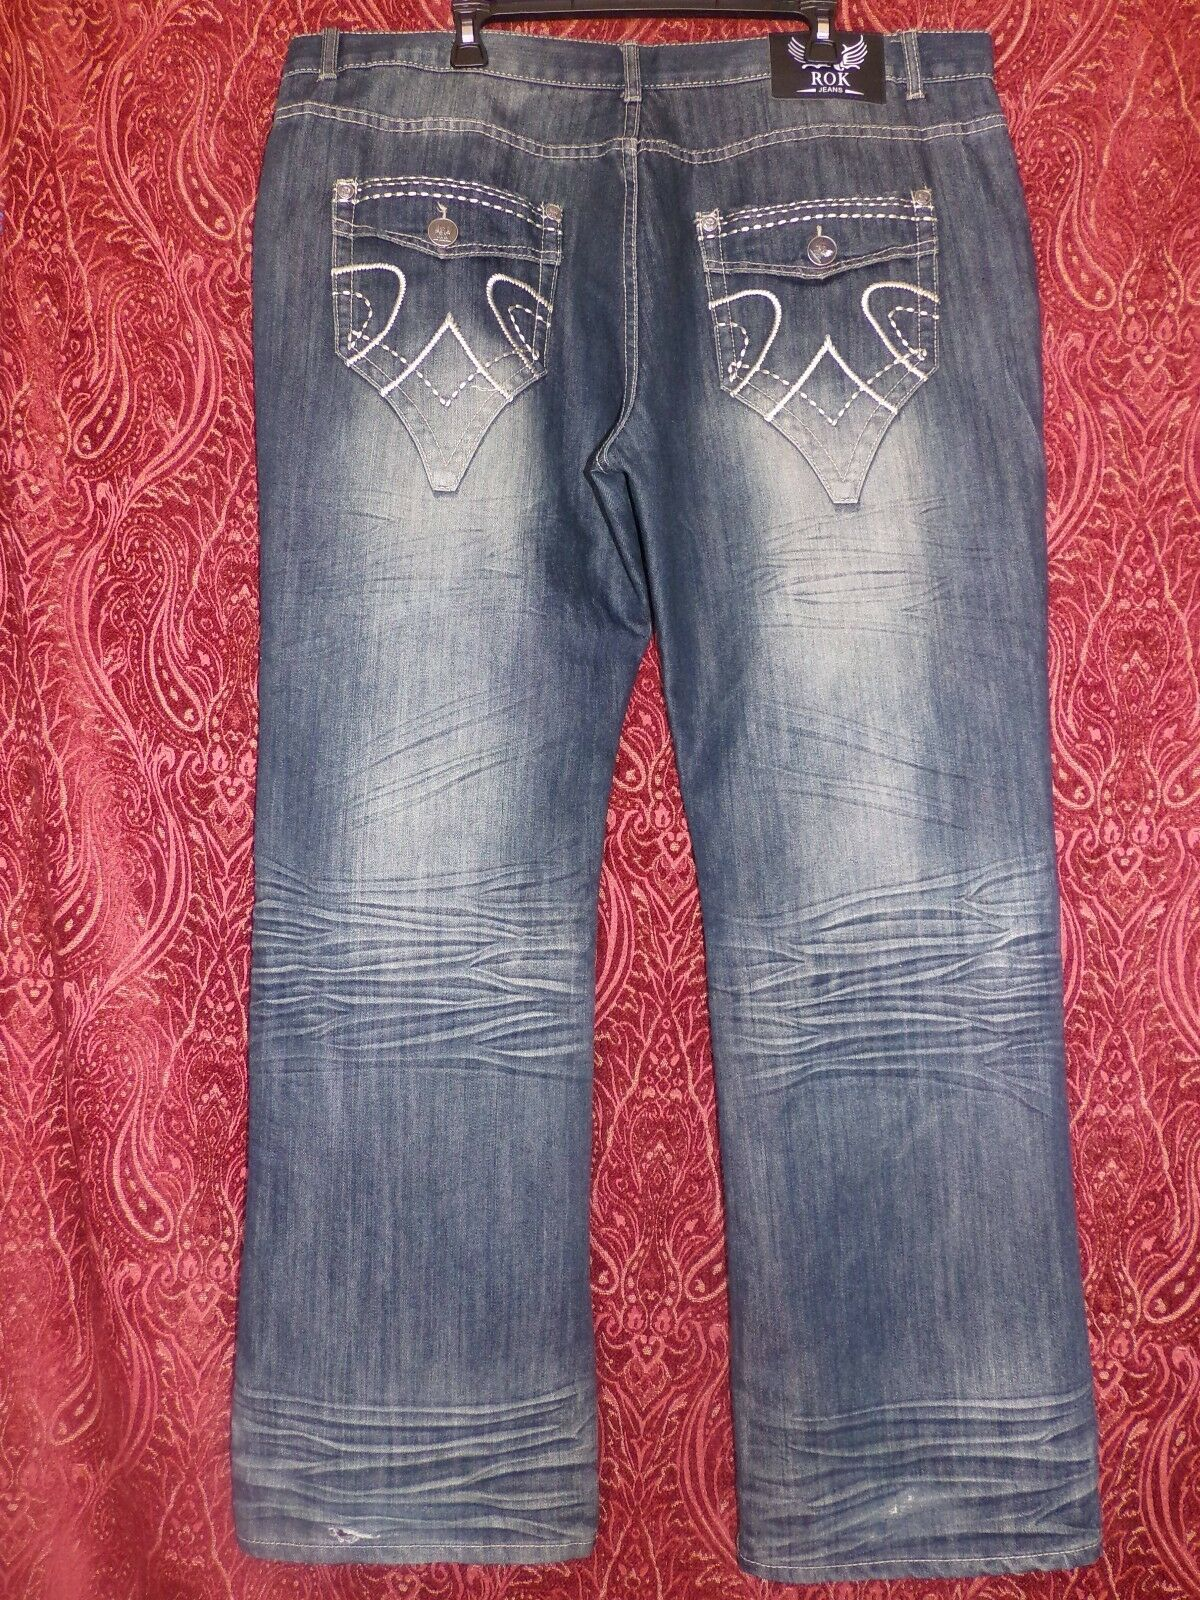 ROKrelaxed fit JEANS  42 X 34 retail  Awesome StoneWash In Style Denim